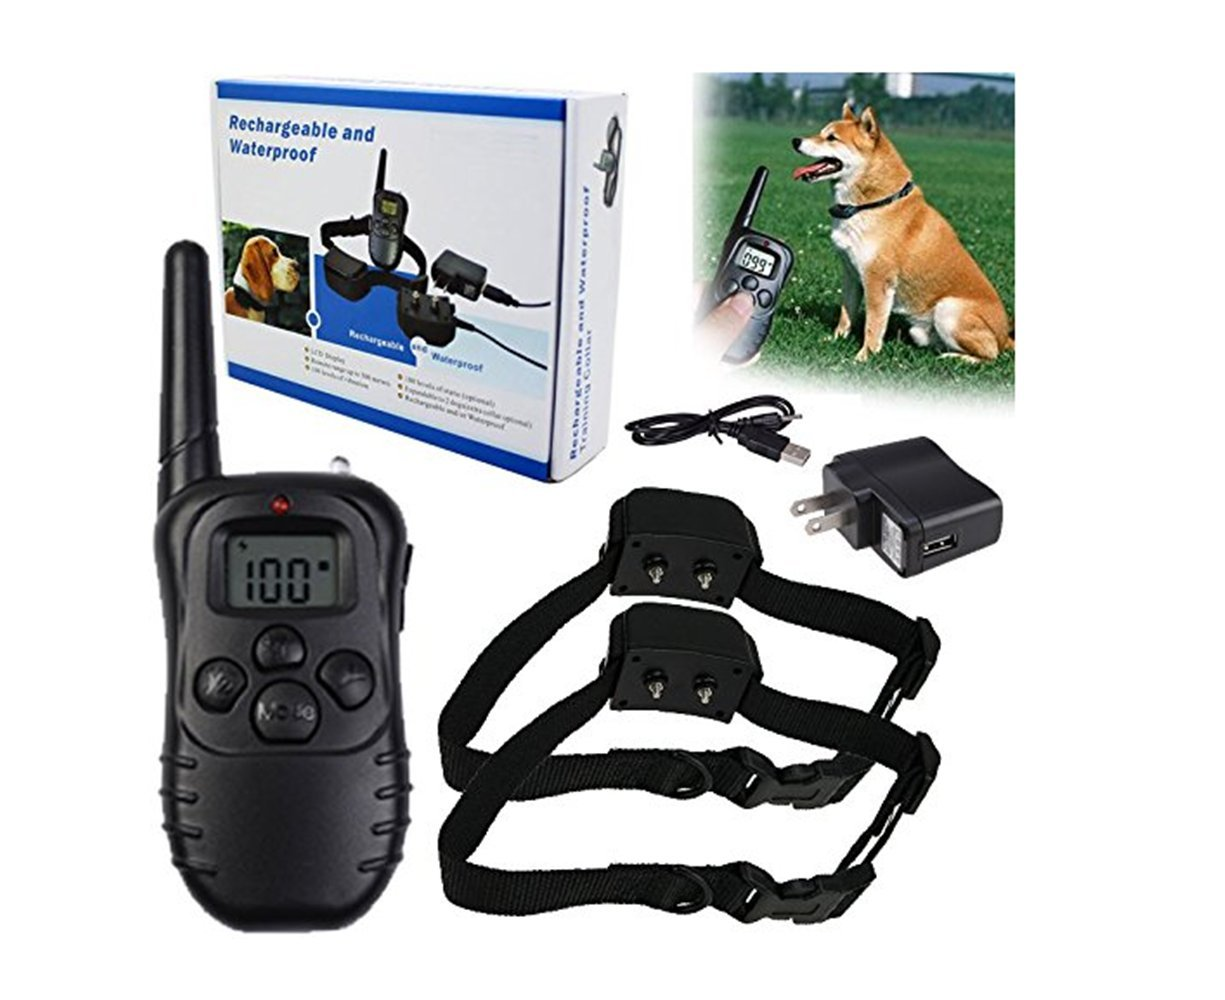 For 2 Dogs Pet Dog Training Collar 328Yd Waterproof Rechargeable 100 Level Shock Remote LCD, Dog Pet Training Collar Shock Vibrate For 1 Dog or 2 Dogs … (For 2 Dogs)